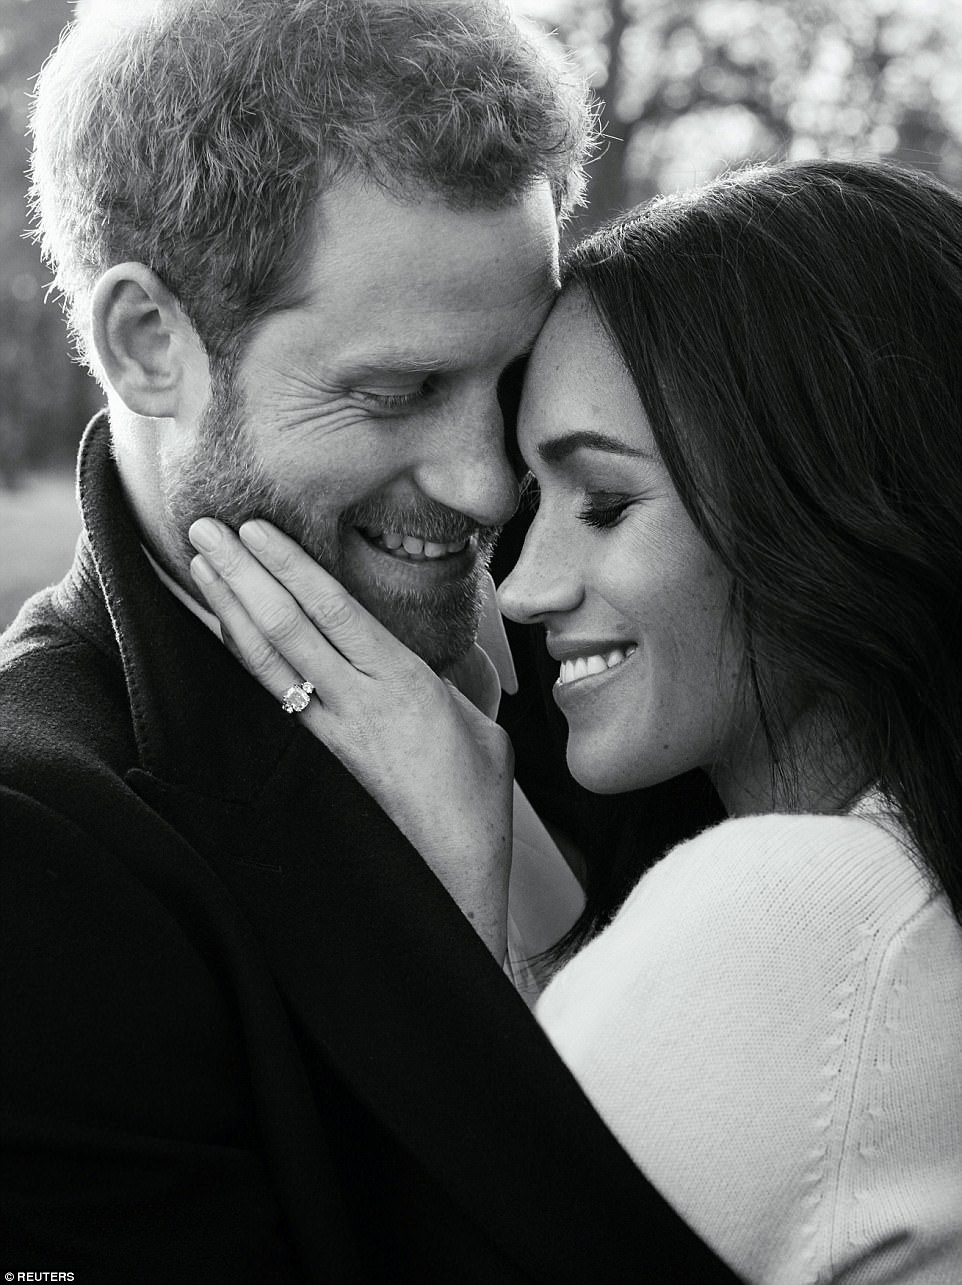 Prince Harry and Meghan Markle have today released their official engagement portraits taken at Frogmore House, with in an intimate black and white shot seeing the couple pose face to face